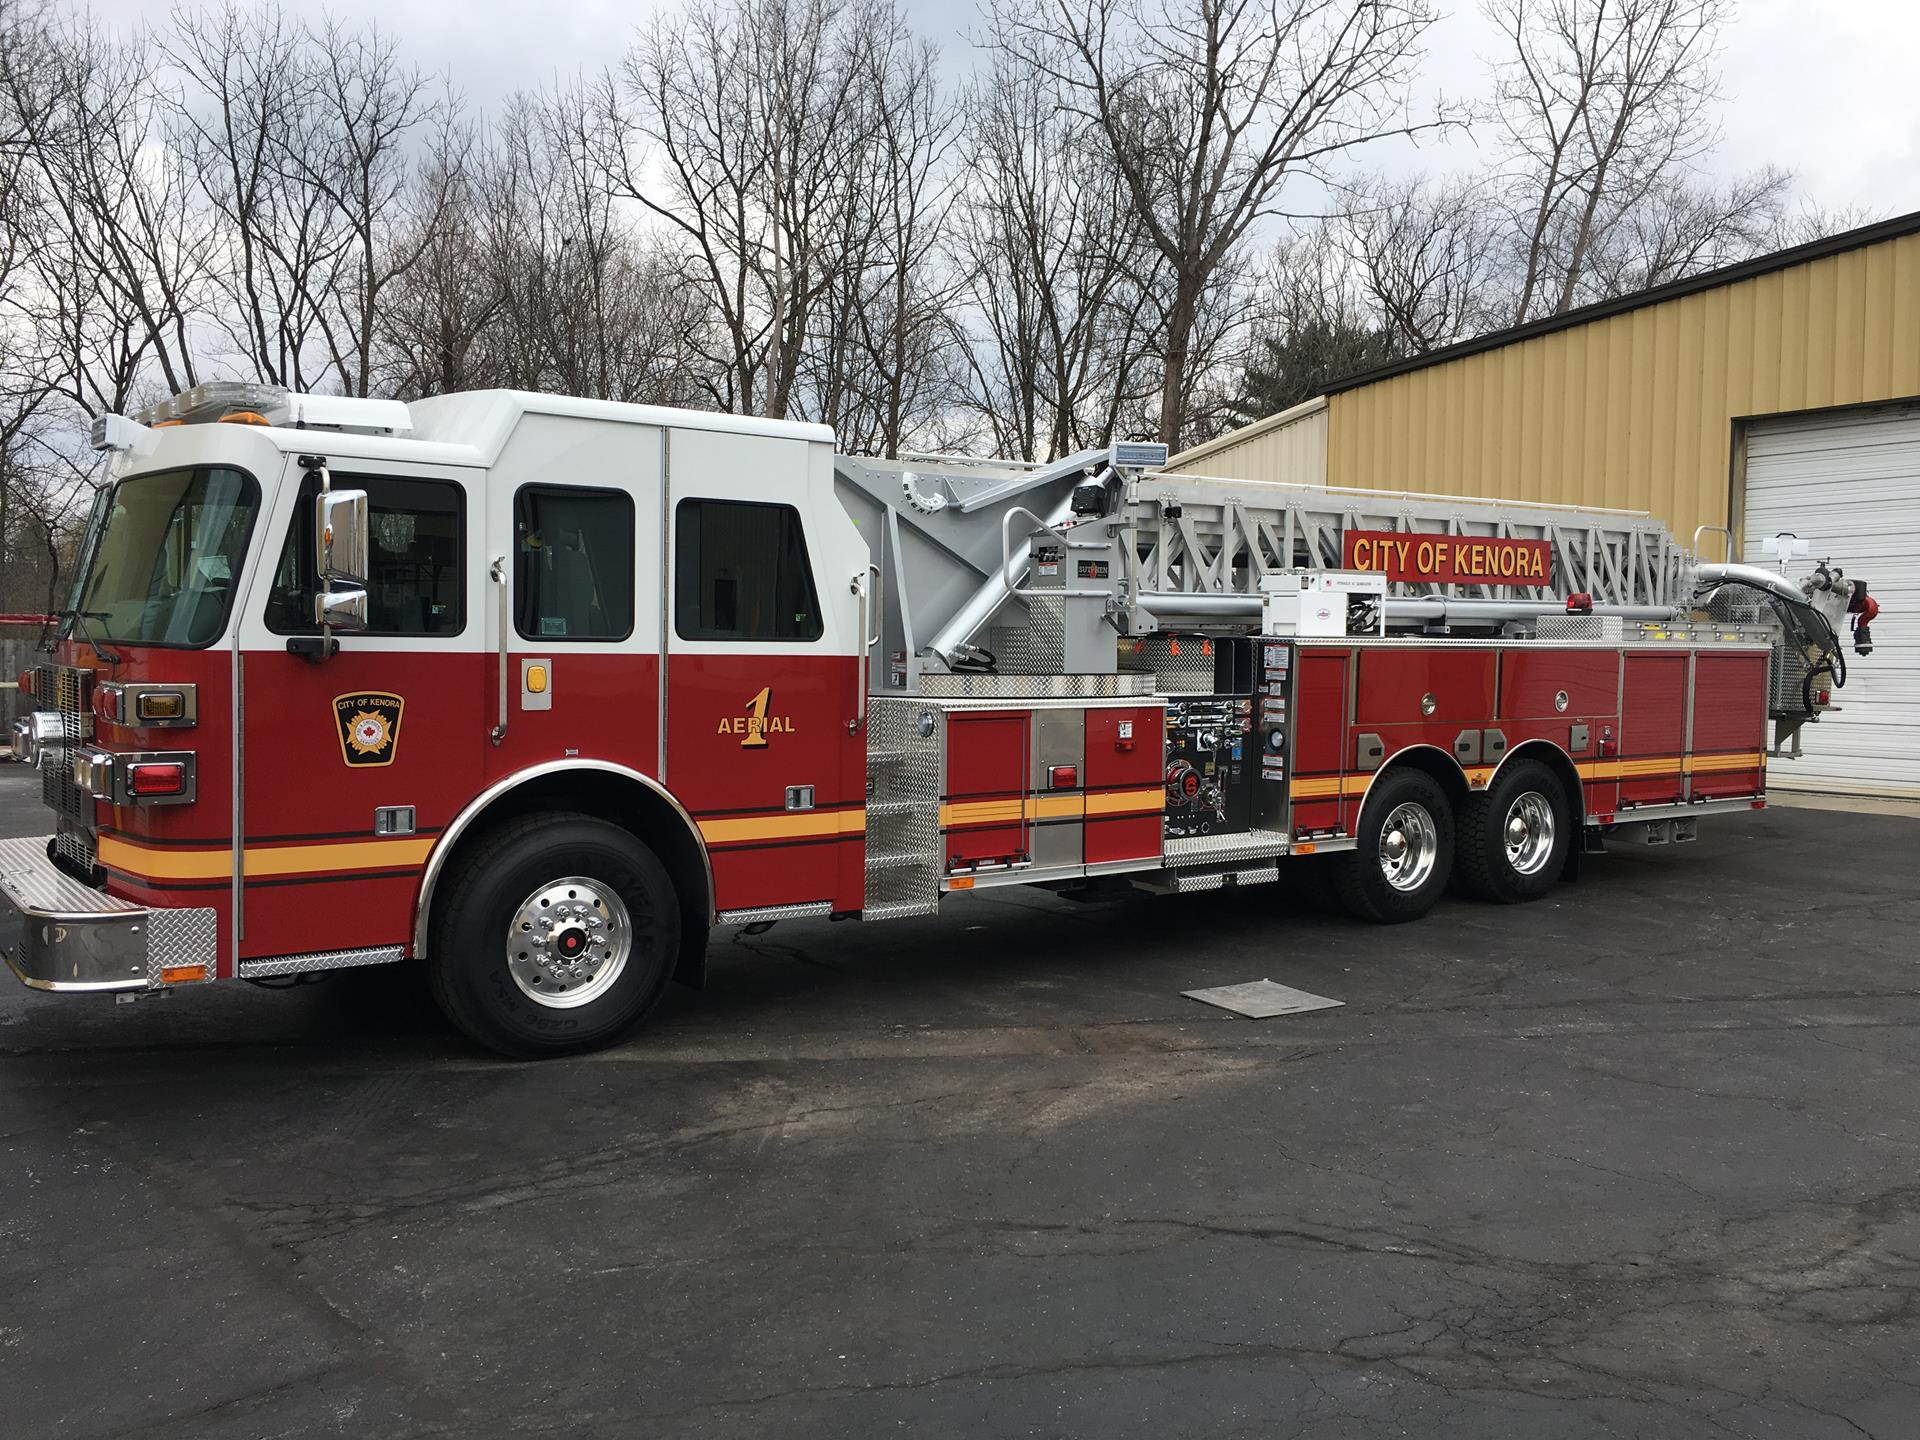 SP 95 – City of Kenora Fire Department, ON